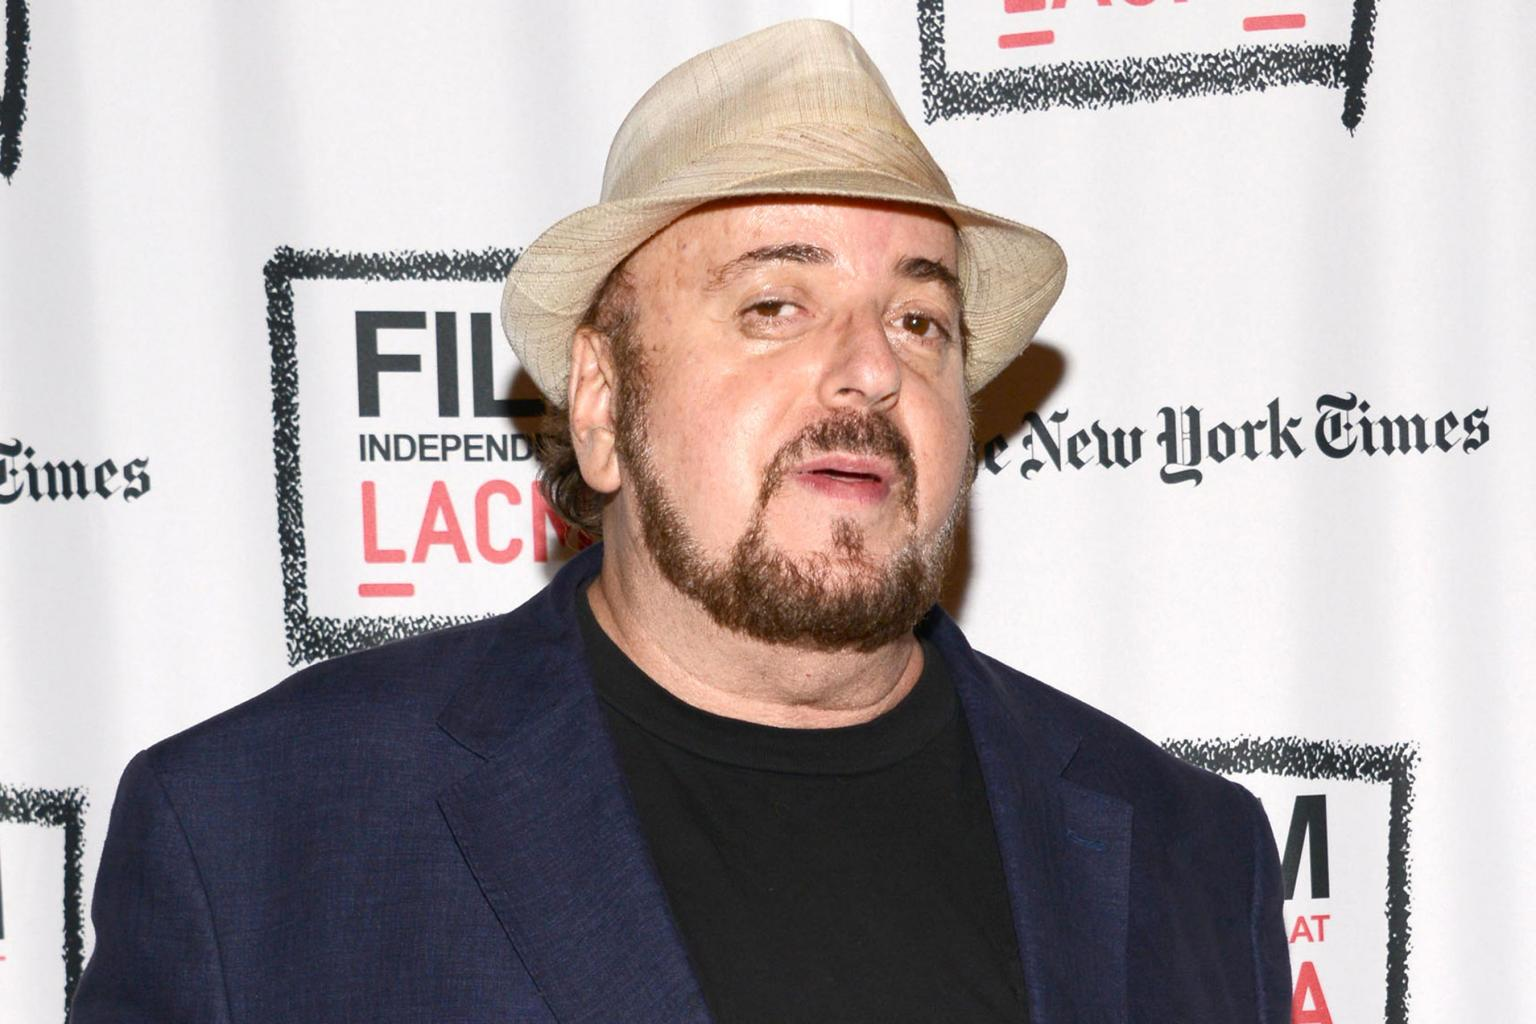 Hollywood Condemns James Toback Over Sexual Misconduct Accusations: 'Women Will No Longer Be Silent'